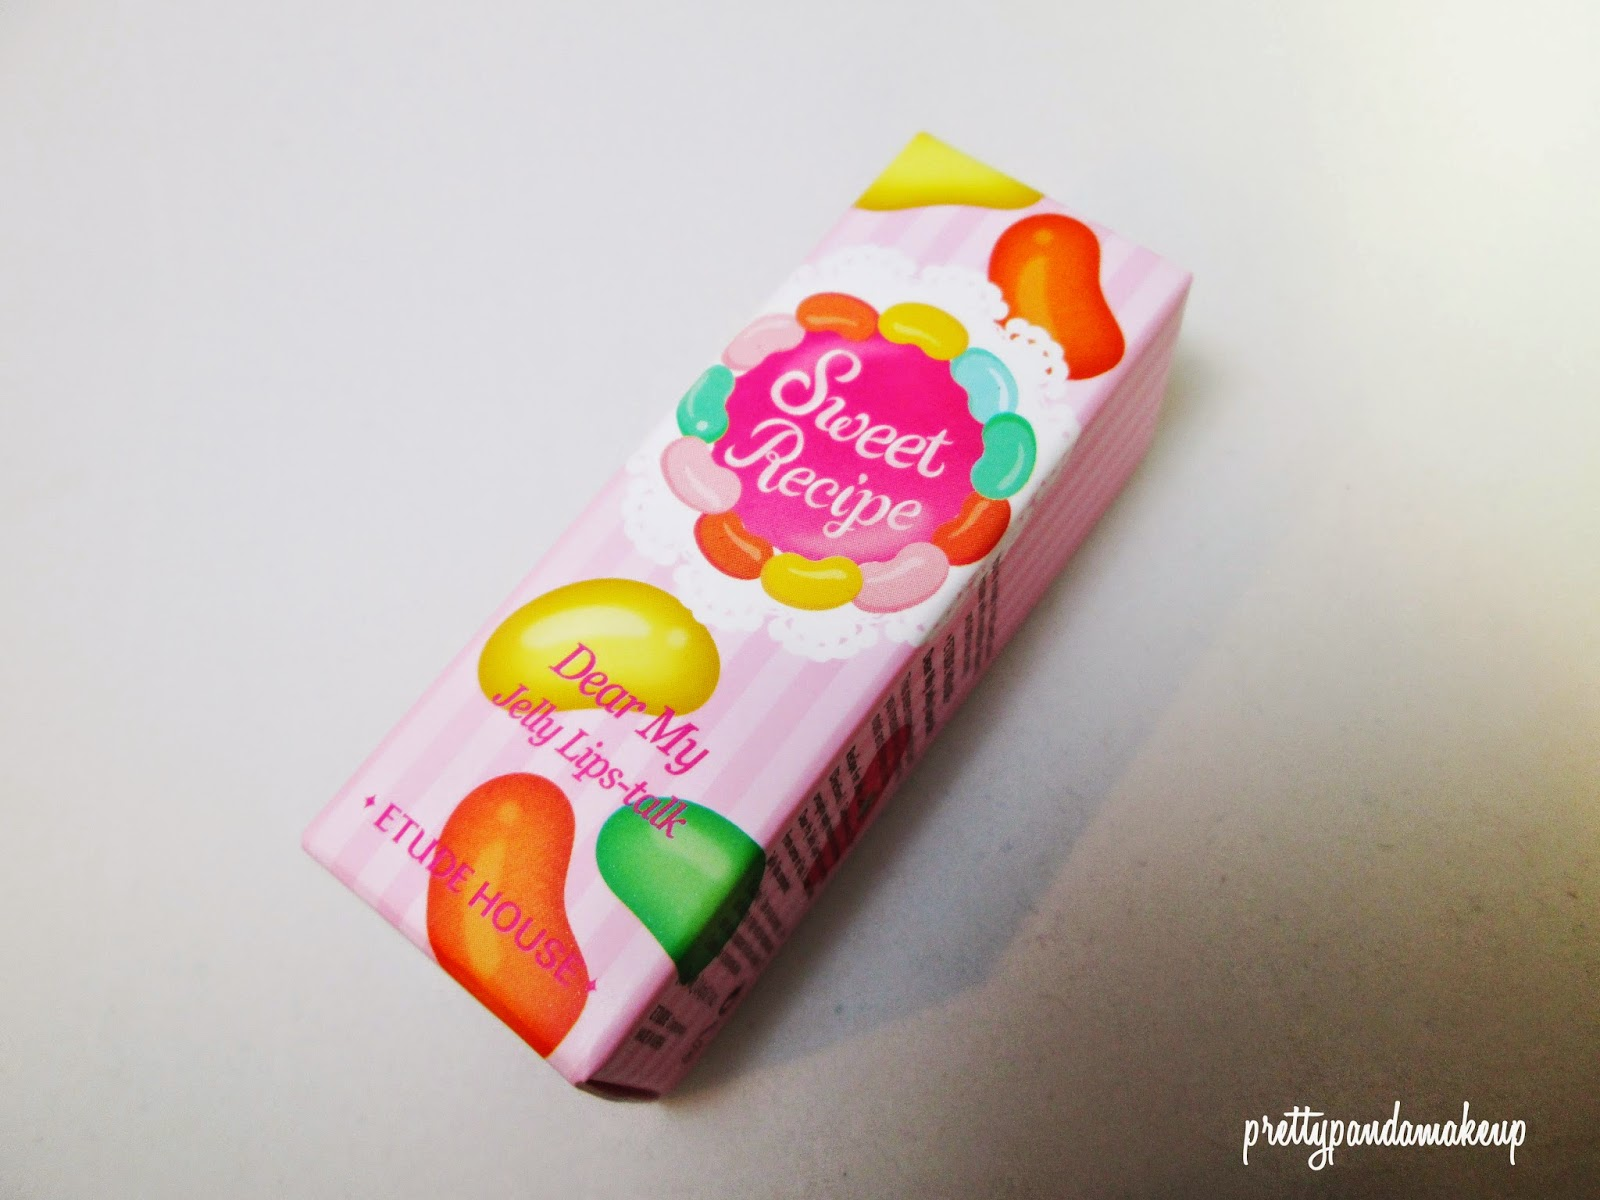 etude house sweet recipe dear my jelly lips-talk review